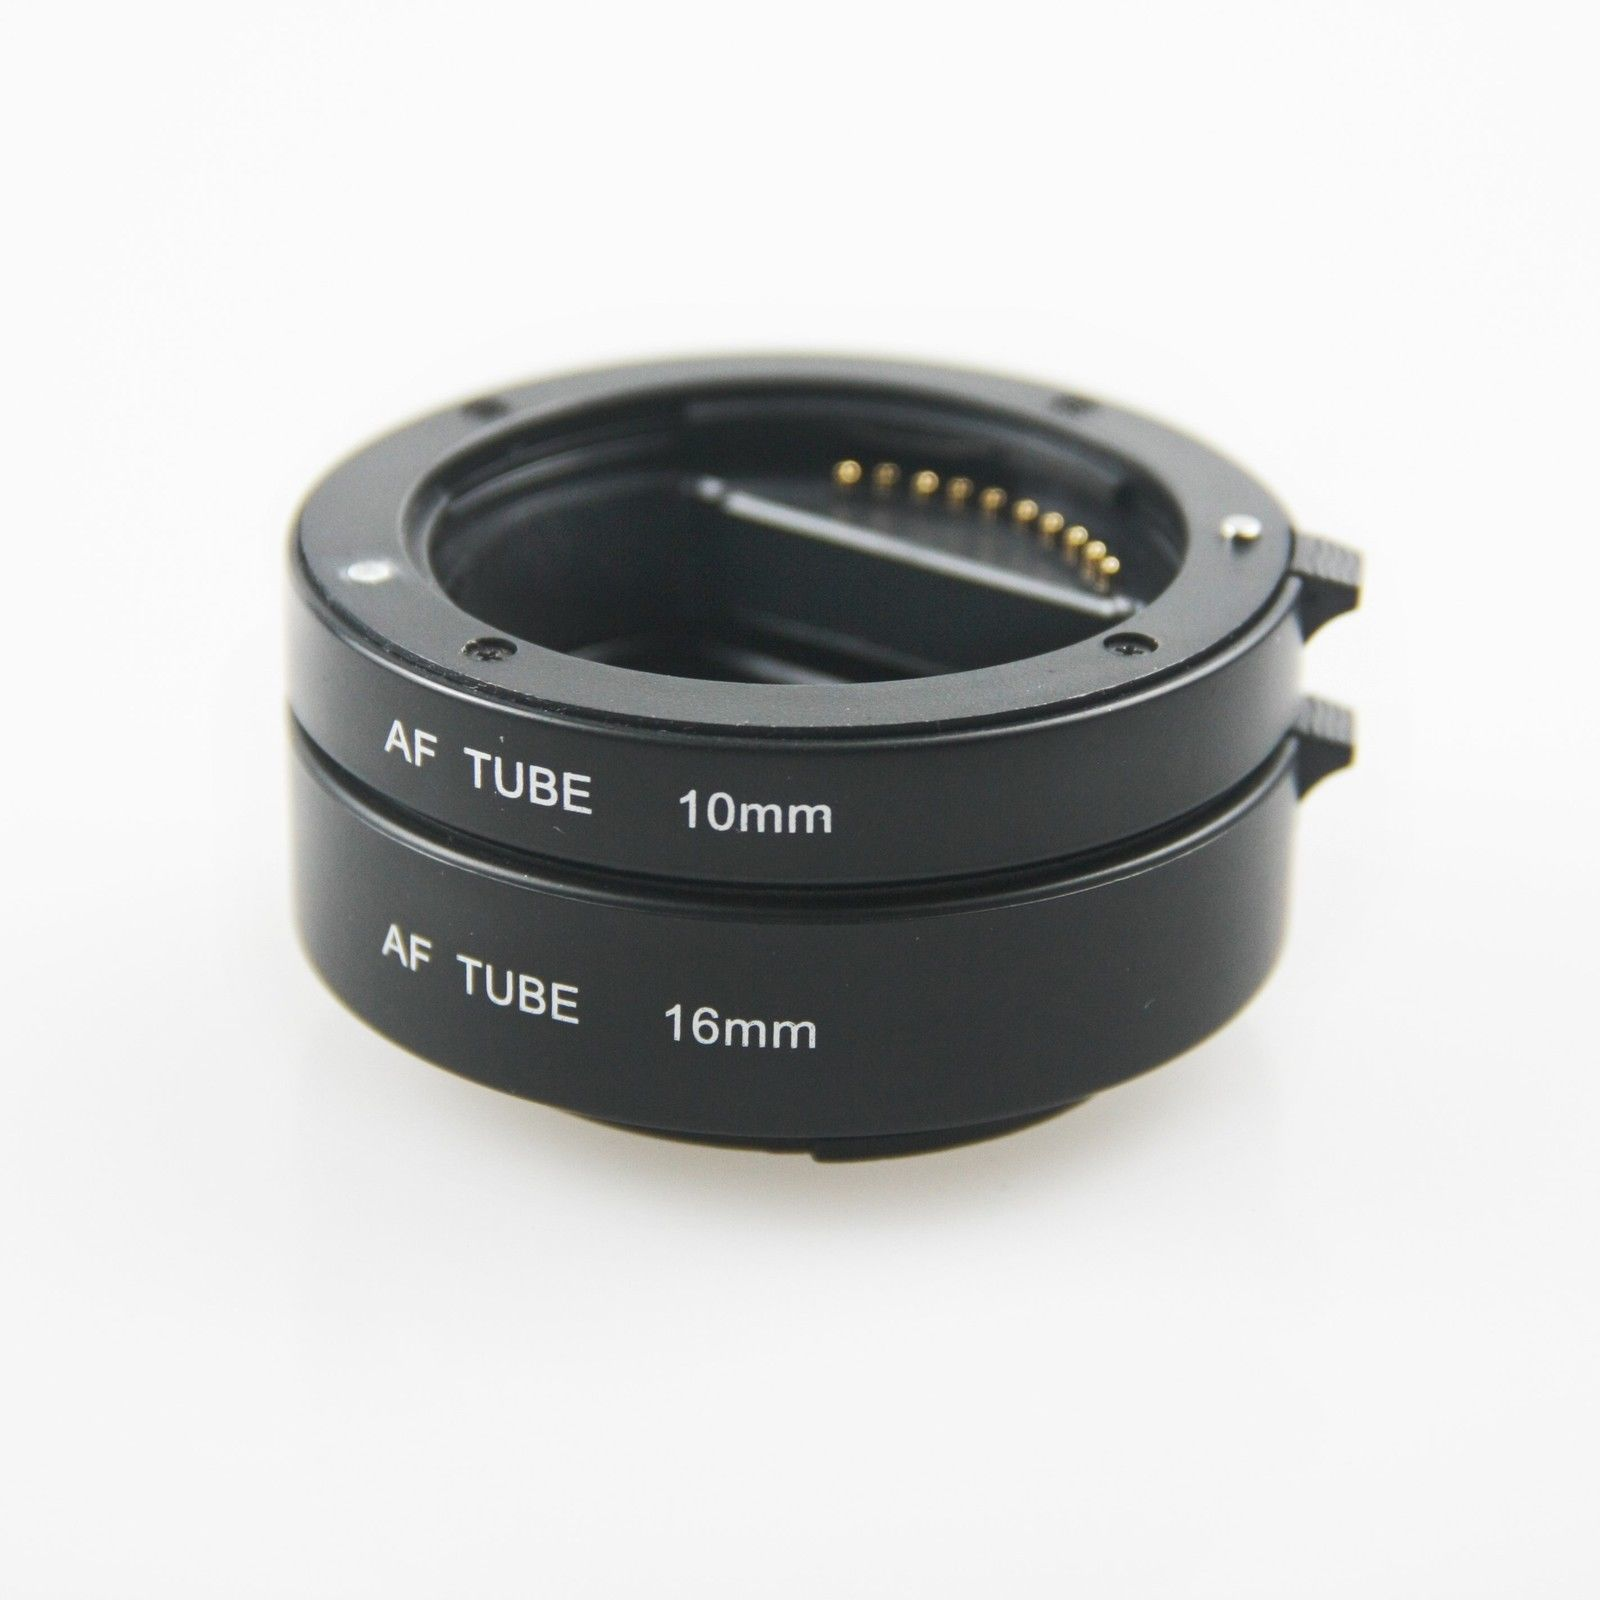 Macro AF Auto Focus Extension Tube 10mm 16mm Set DG for Sony NEX E-mount A7 A7R